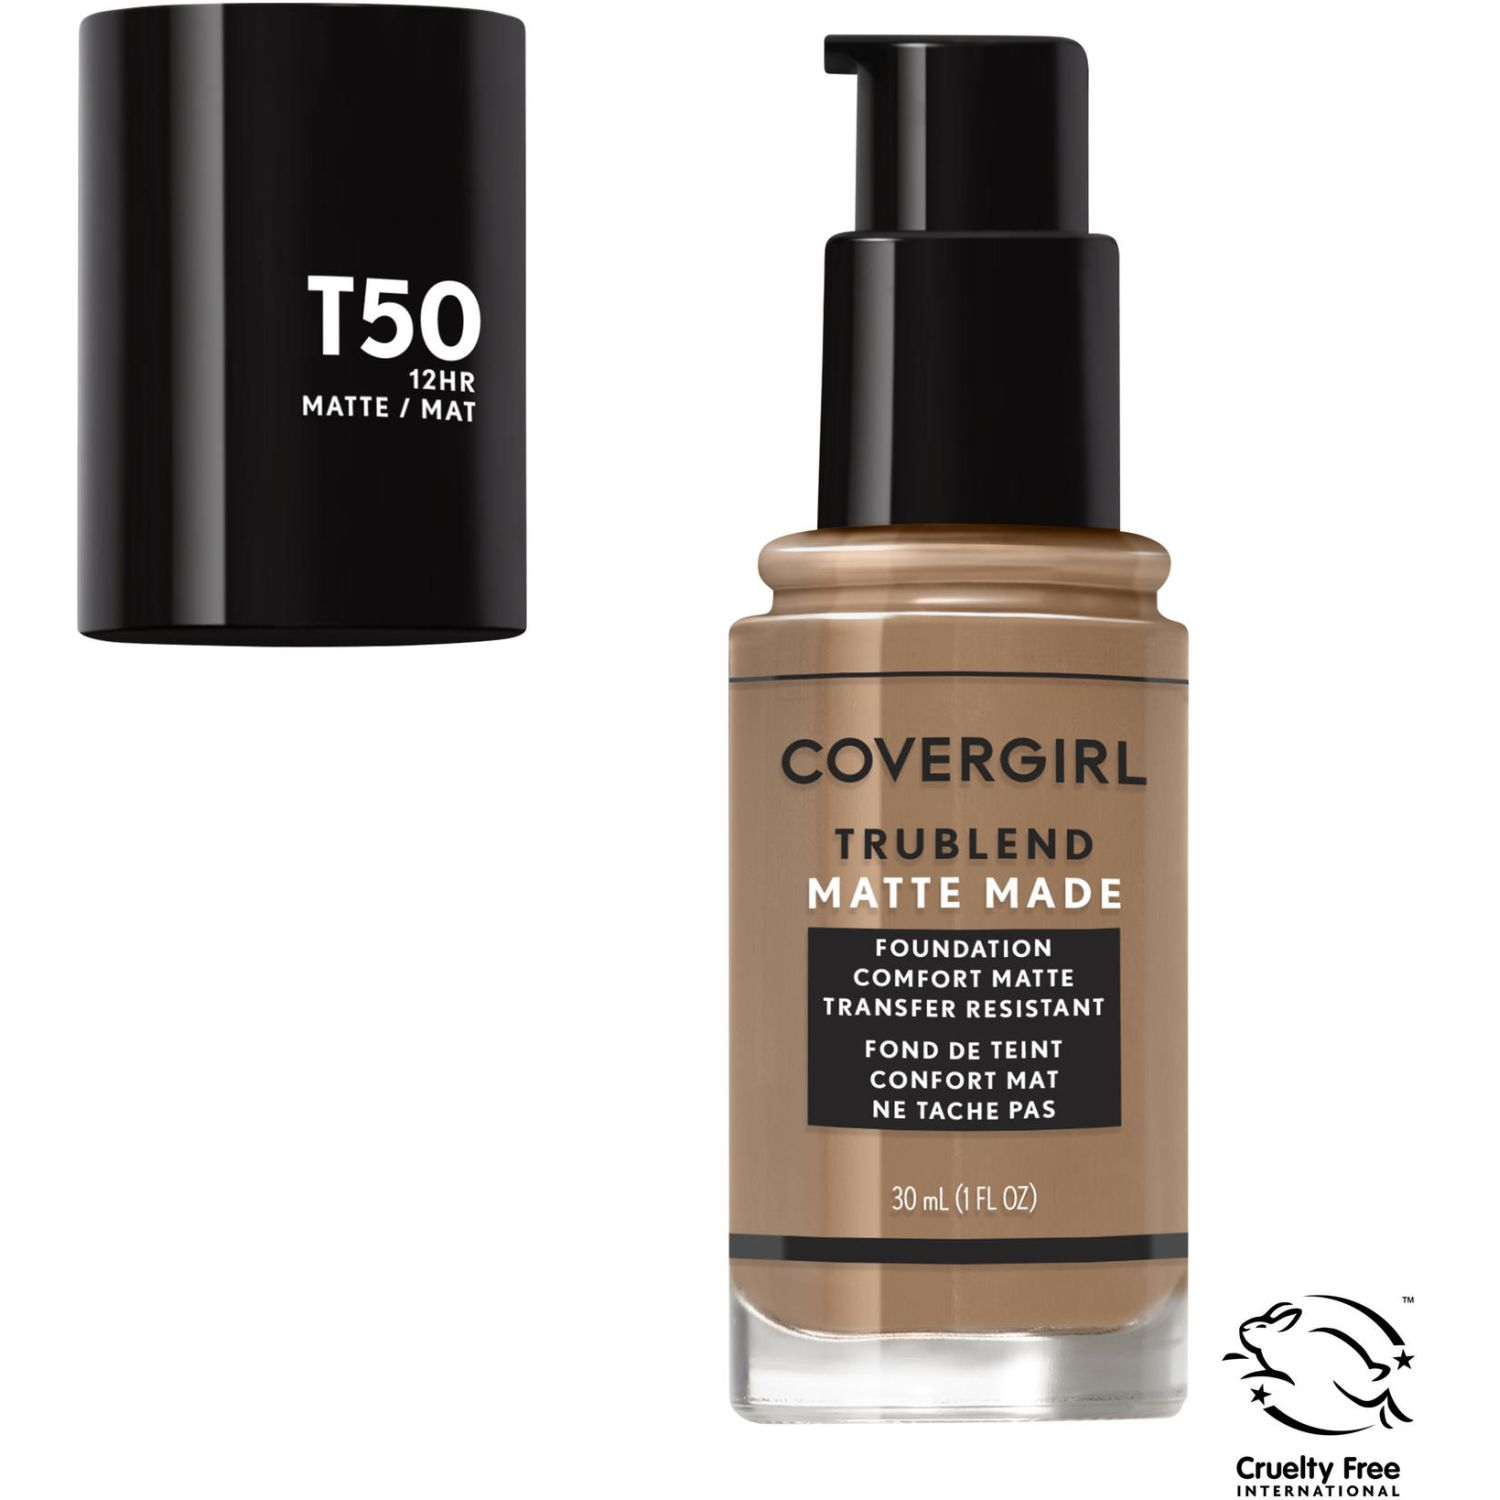 Covergirl Base Trublend Matte Made Liquid Makeup NATURAL TAN T50 Bases